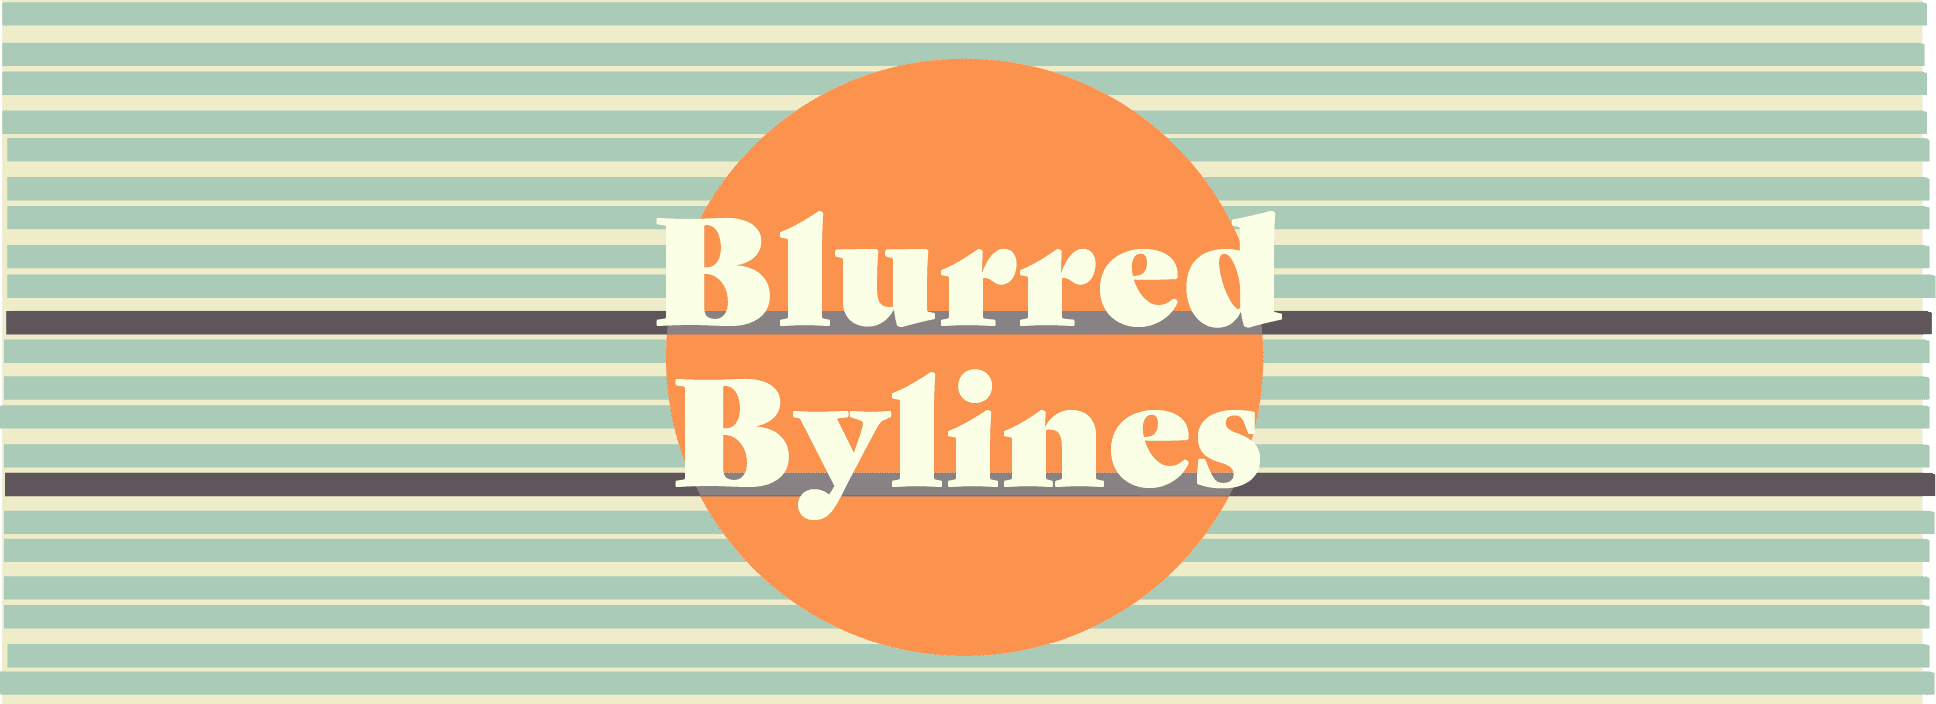 Blurred Bylines logo created by Shari Rose.